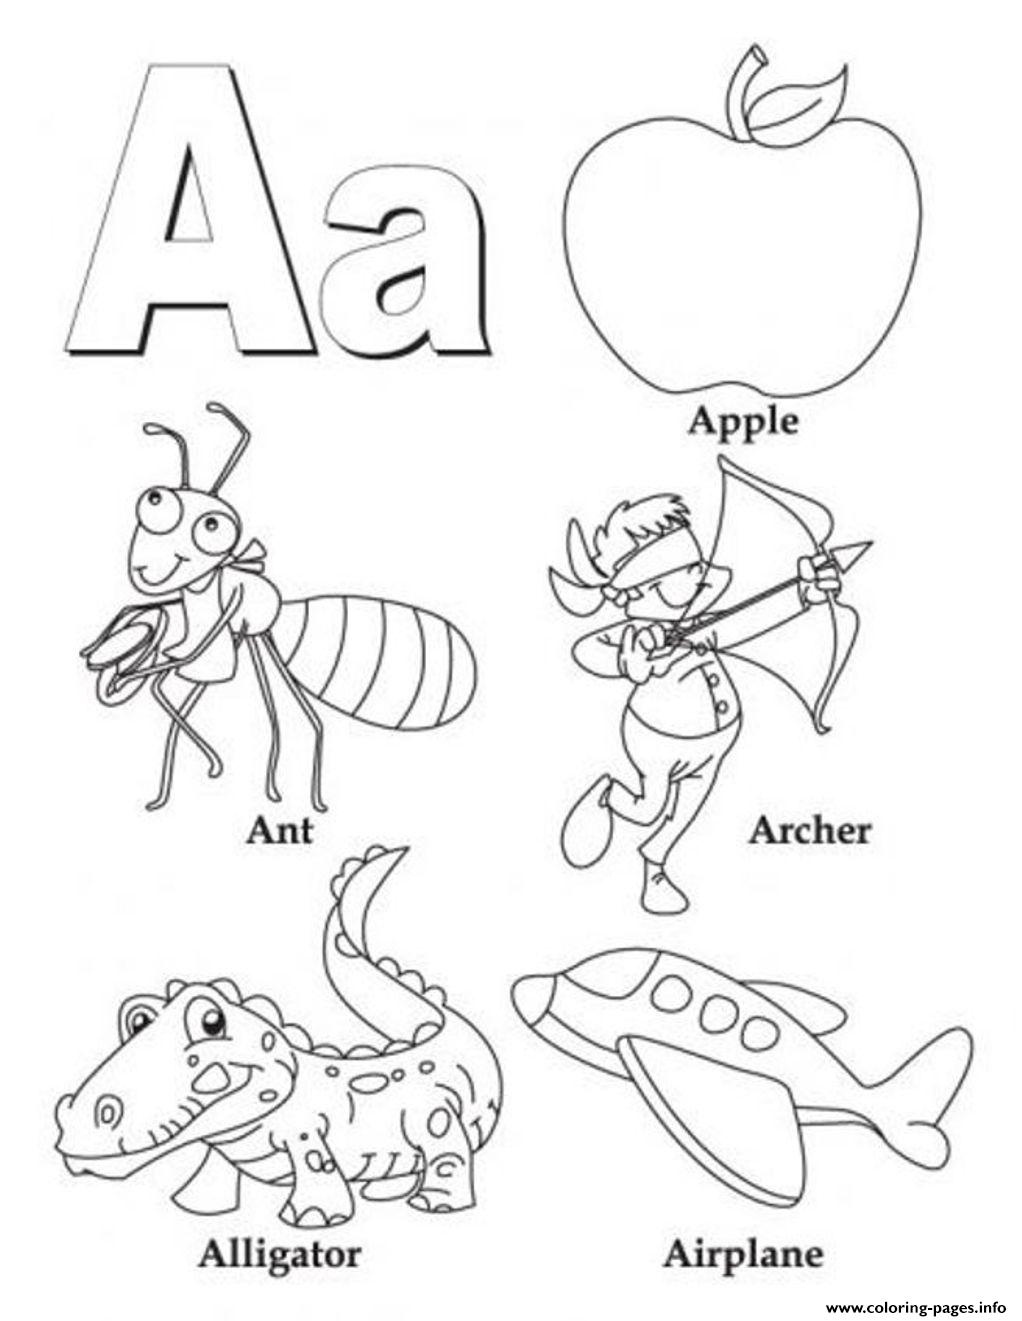 alphabet coloring pages download - photo#20